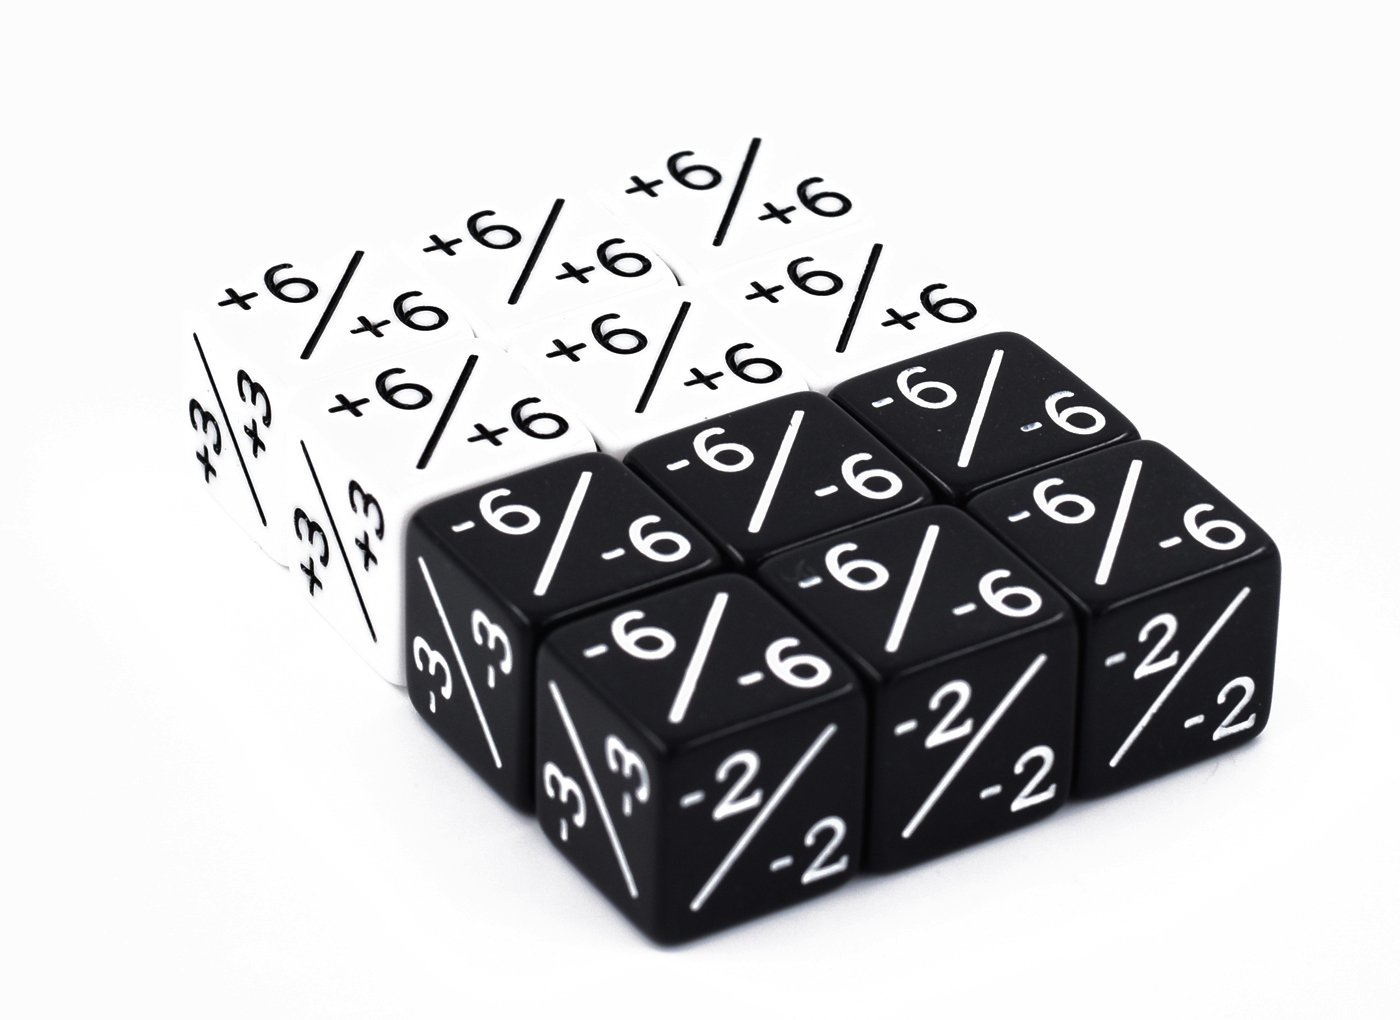 Dice Counters Pack of 12 D6 Dice / White +1/+1 & Black -1/-1 / for Magic / The Gathering and other games / CCG MTG